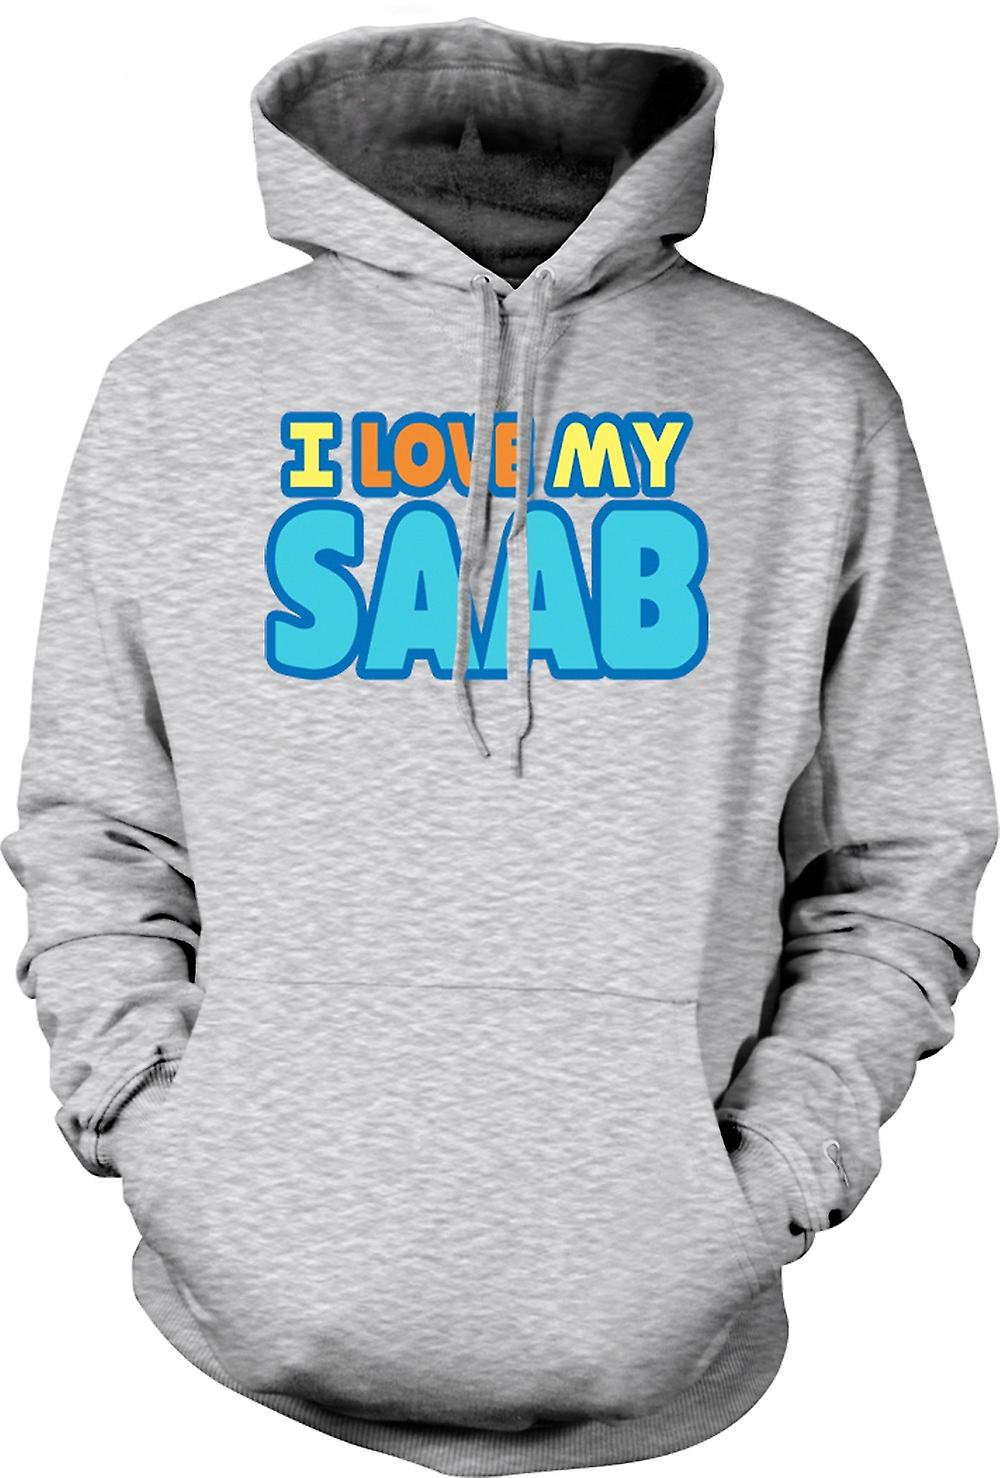 Mens Hoodie - I Love My Saab - Car Enthusiast